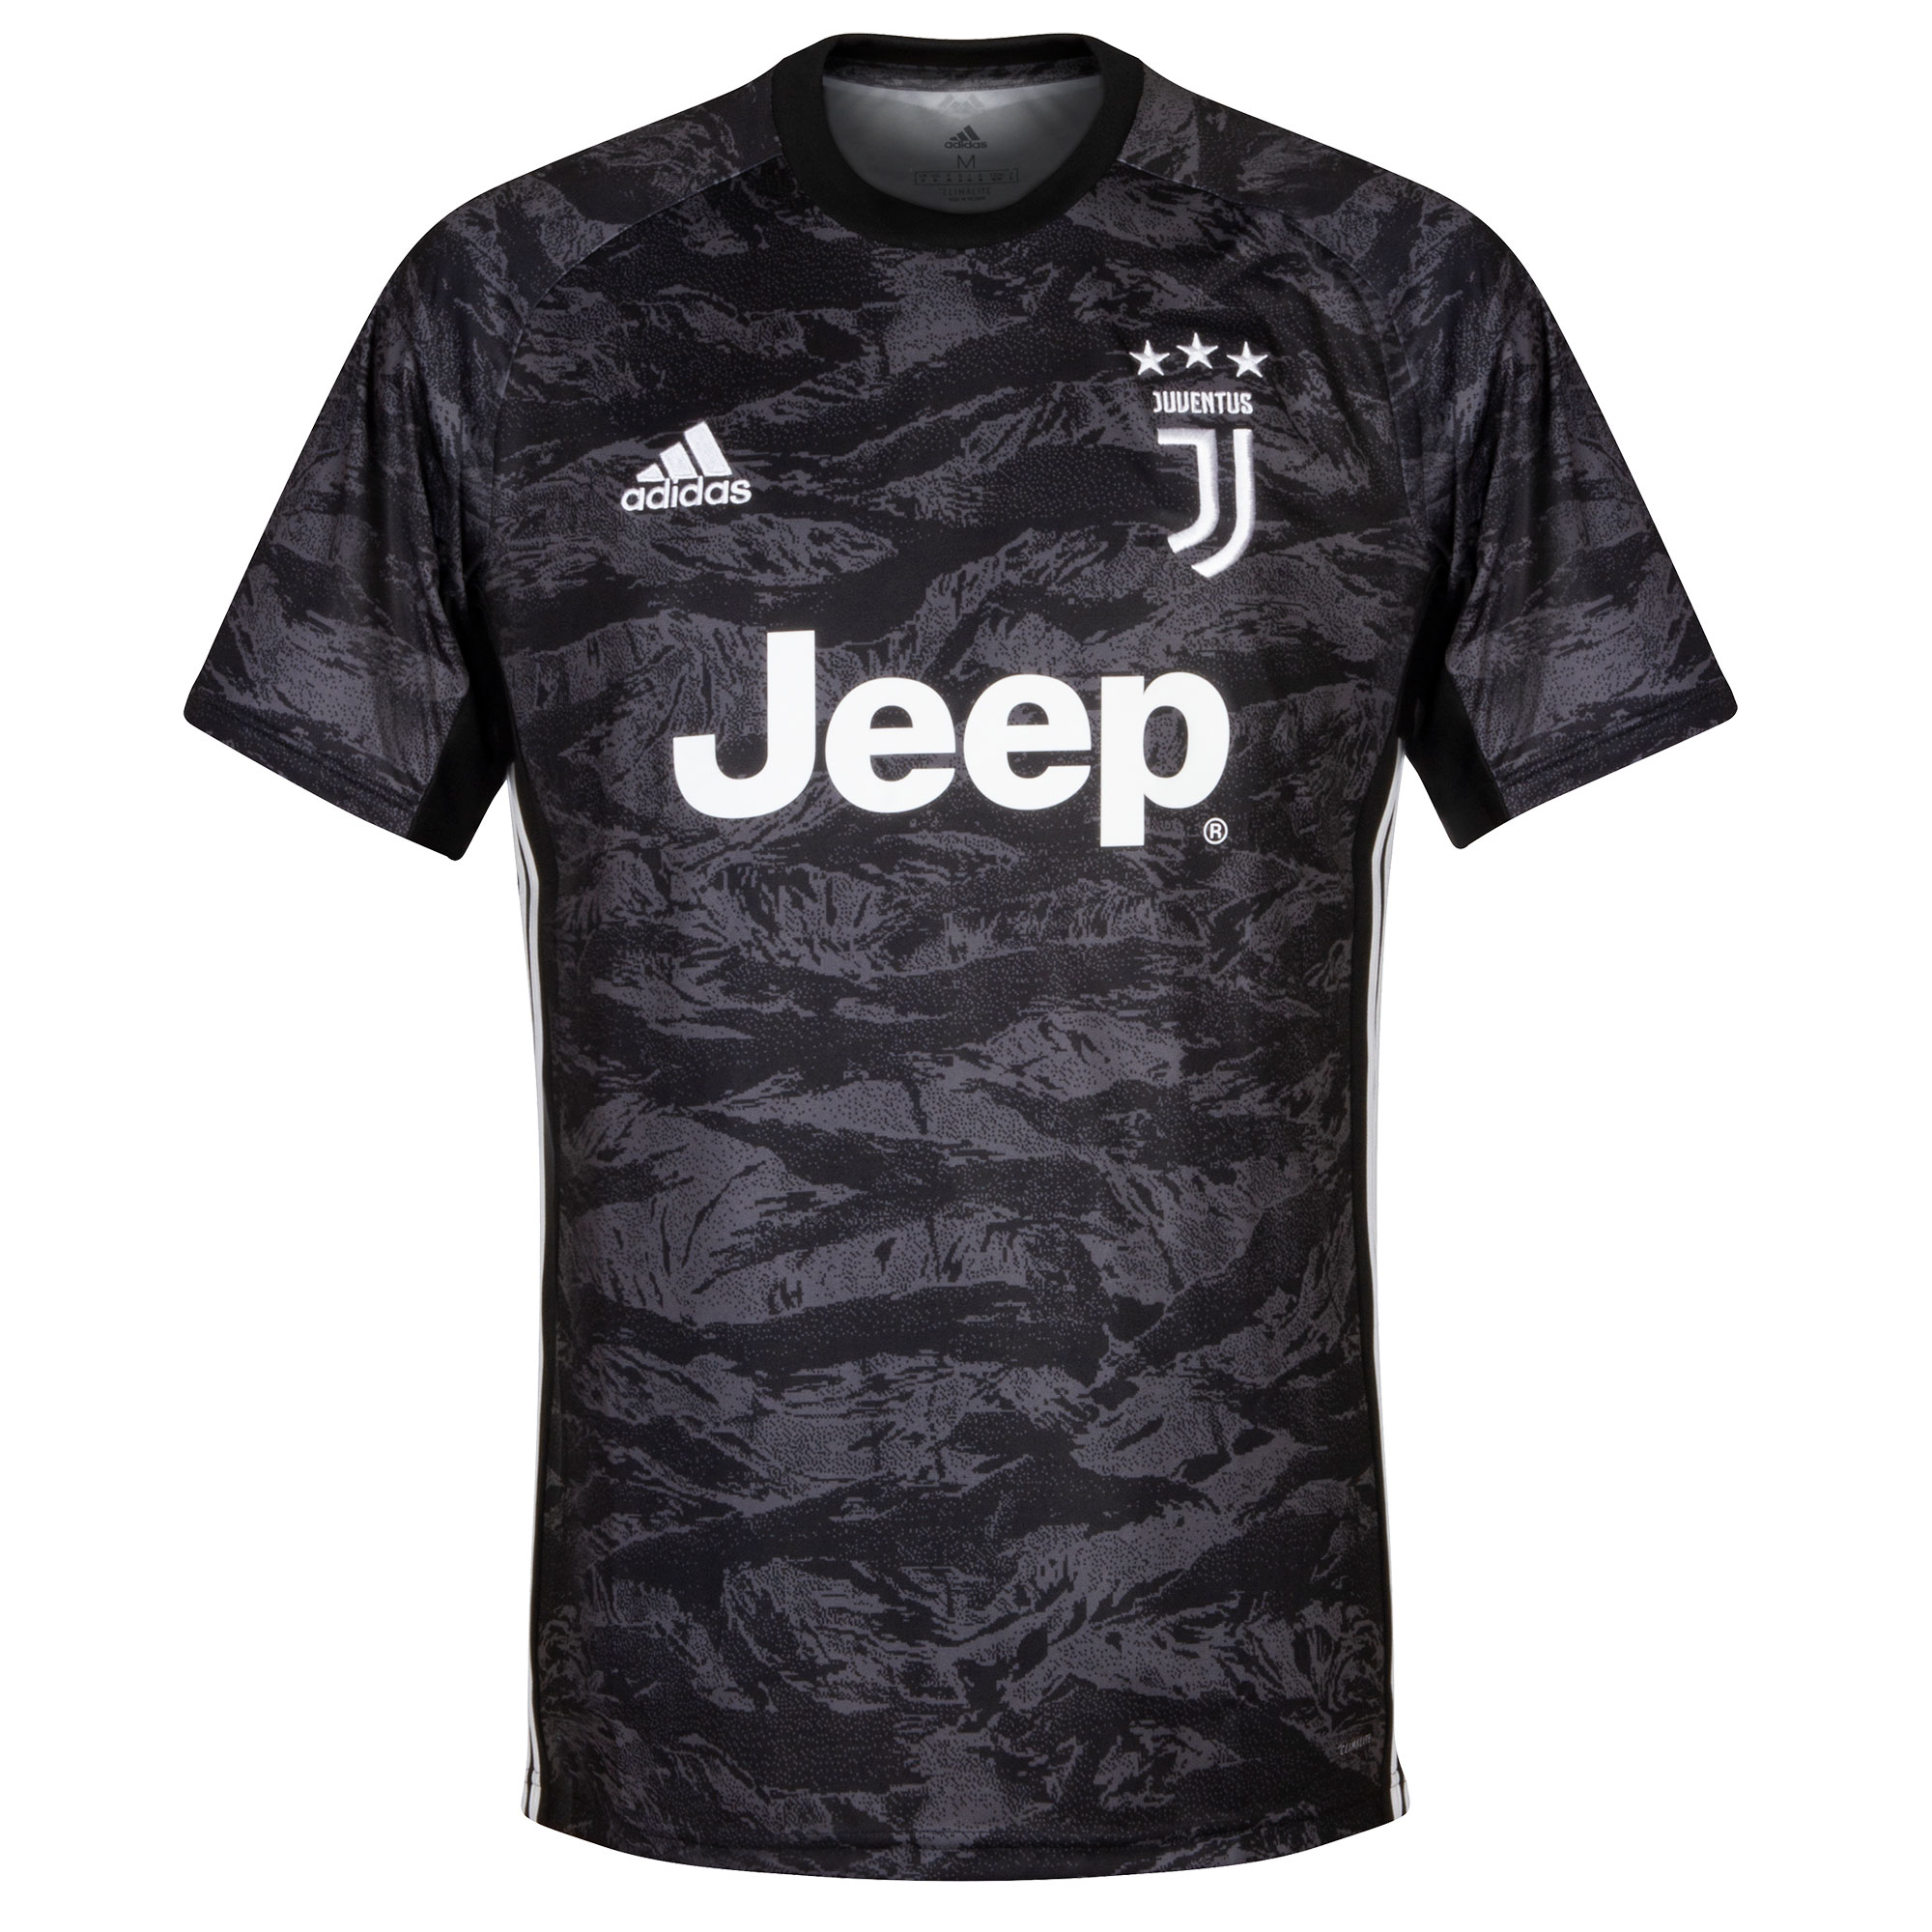 Juventus Goalkeeper shirt